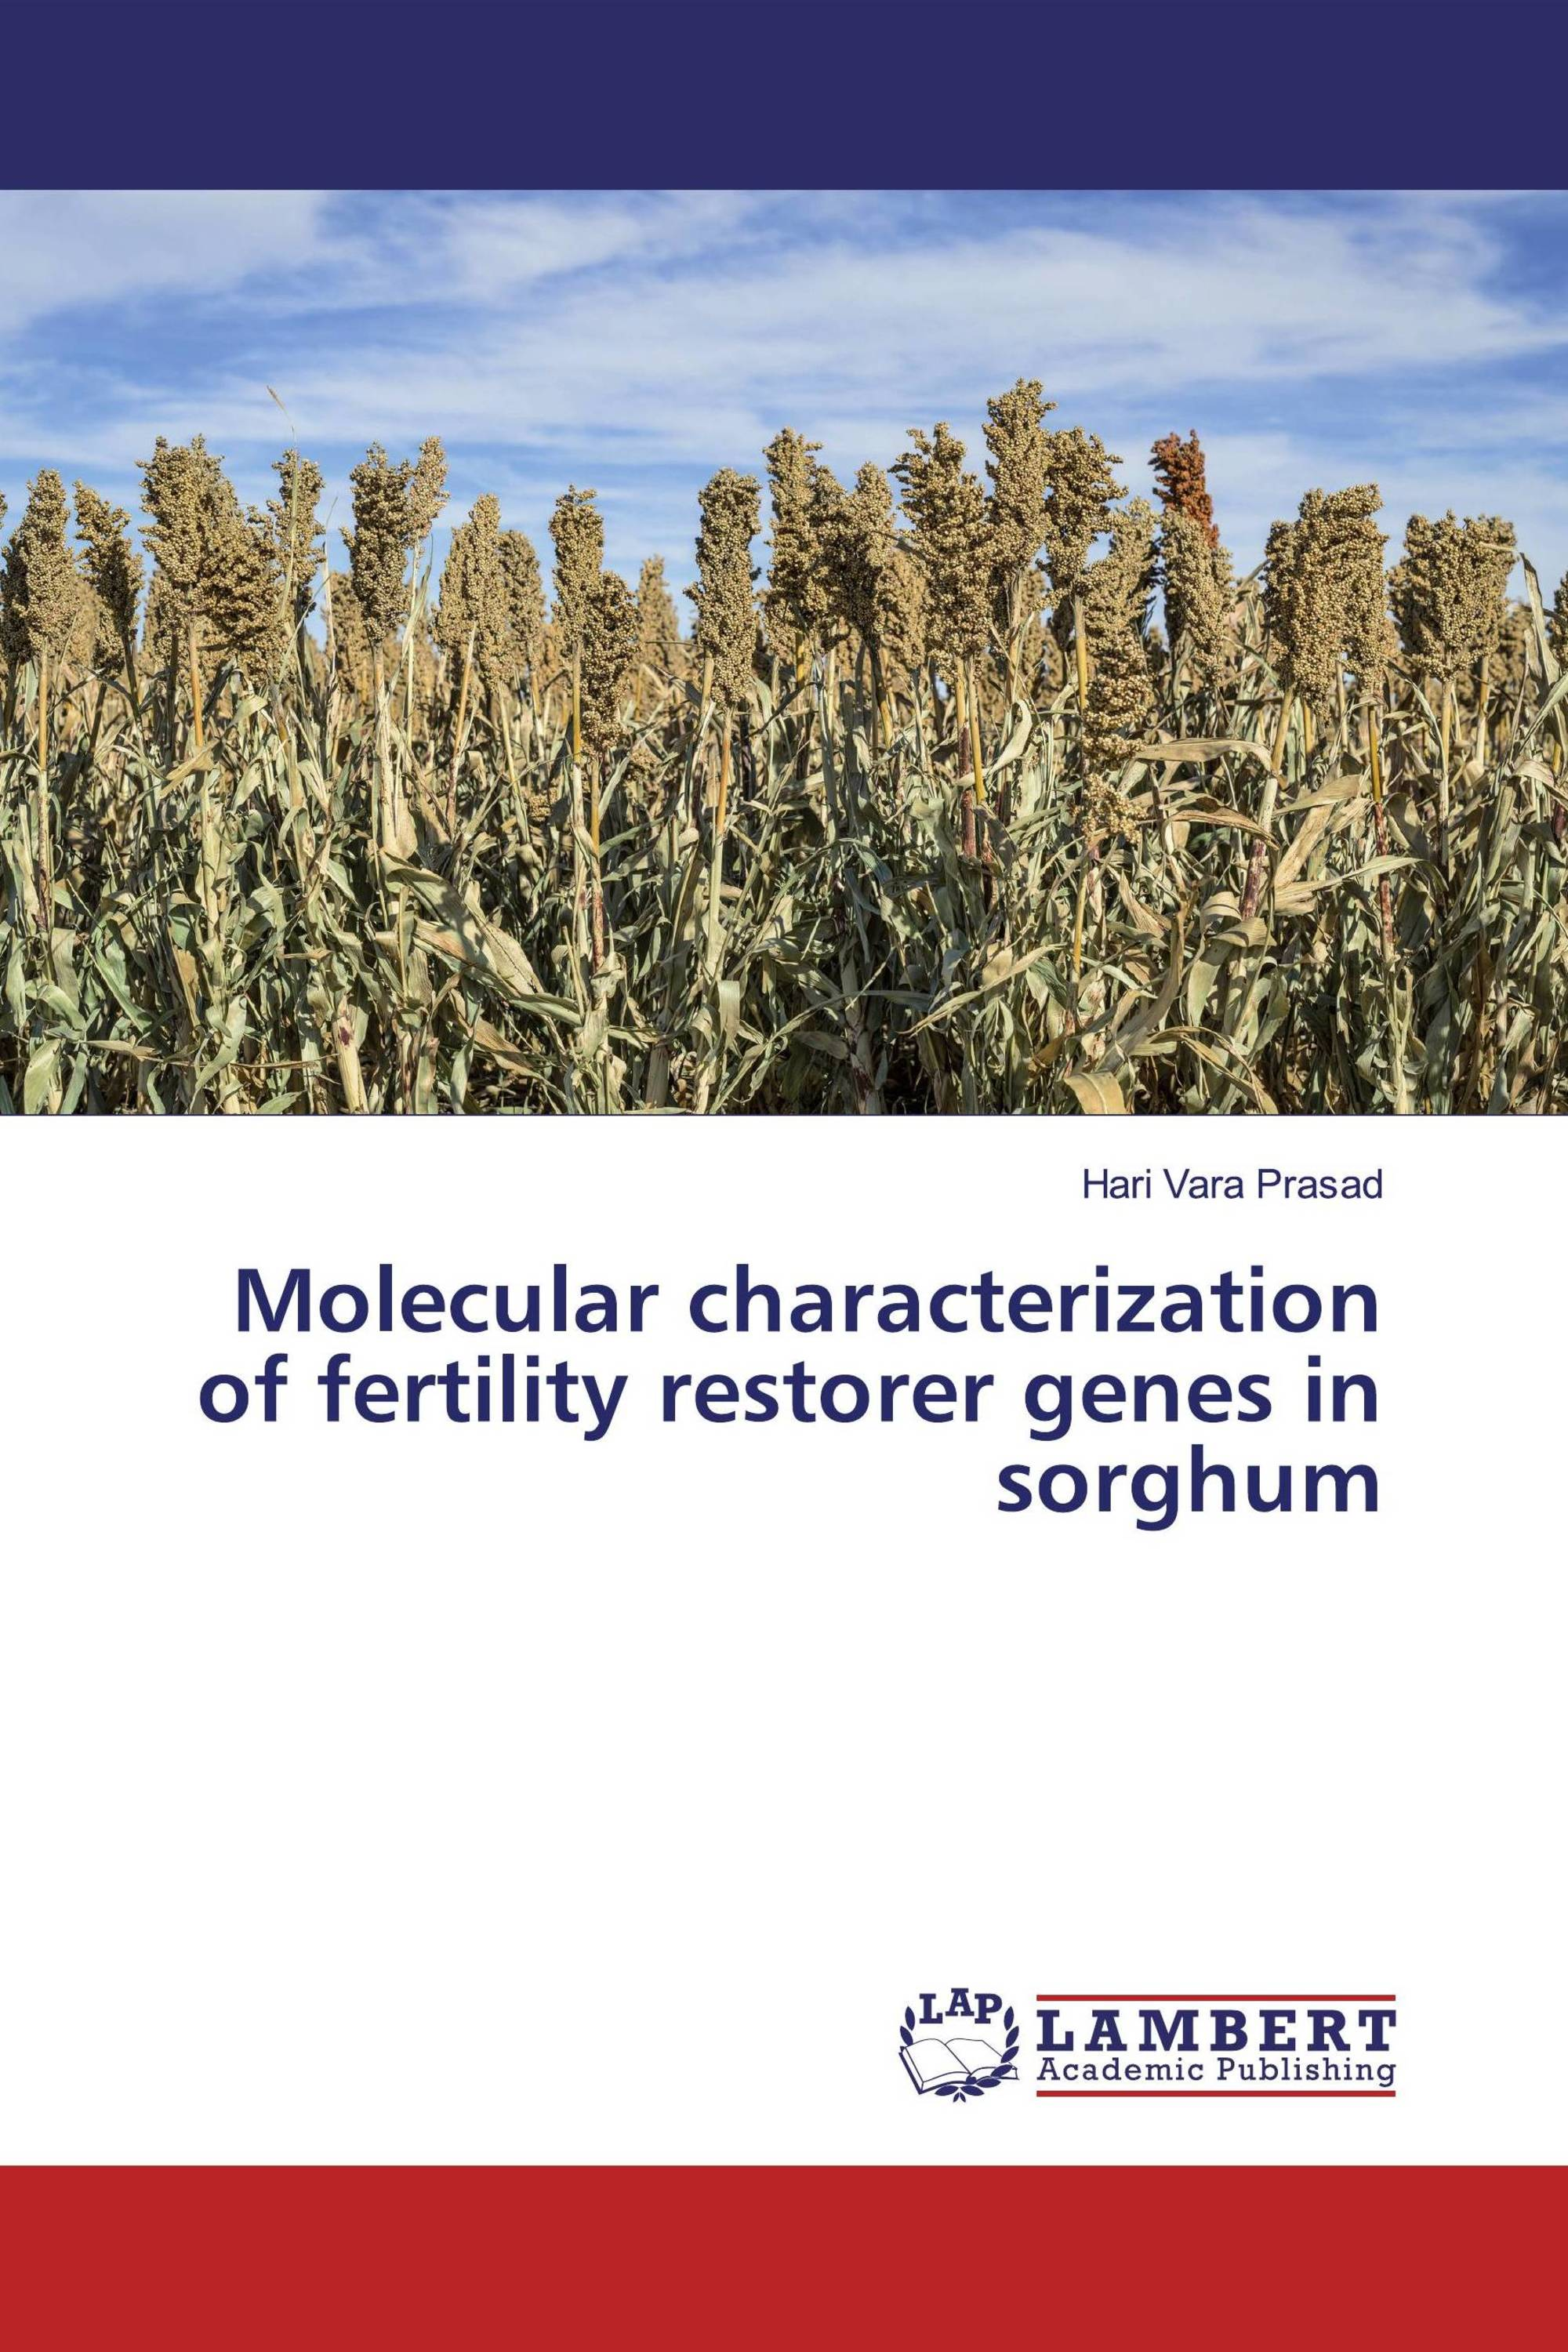 Molecular characterization of fertility restorer genes in sorghum